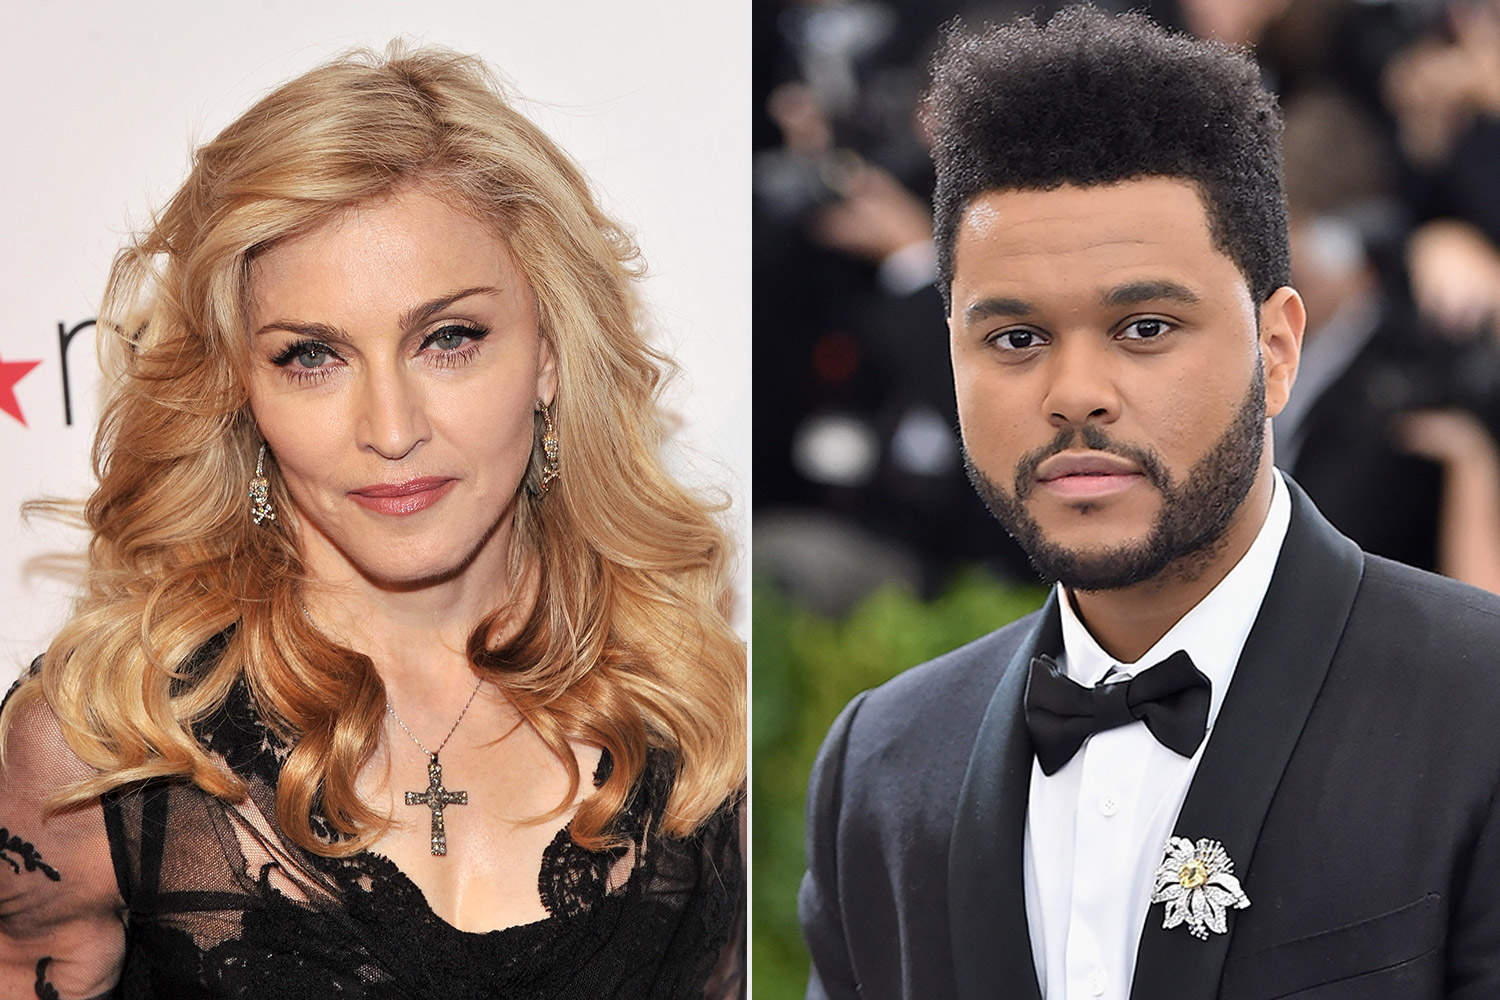 Madonna and the weeknd